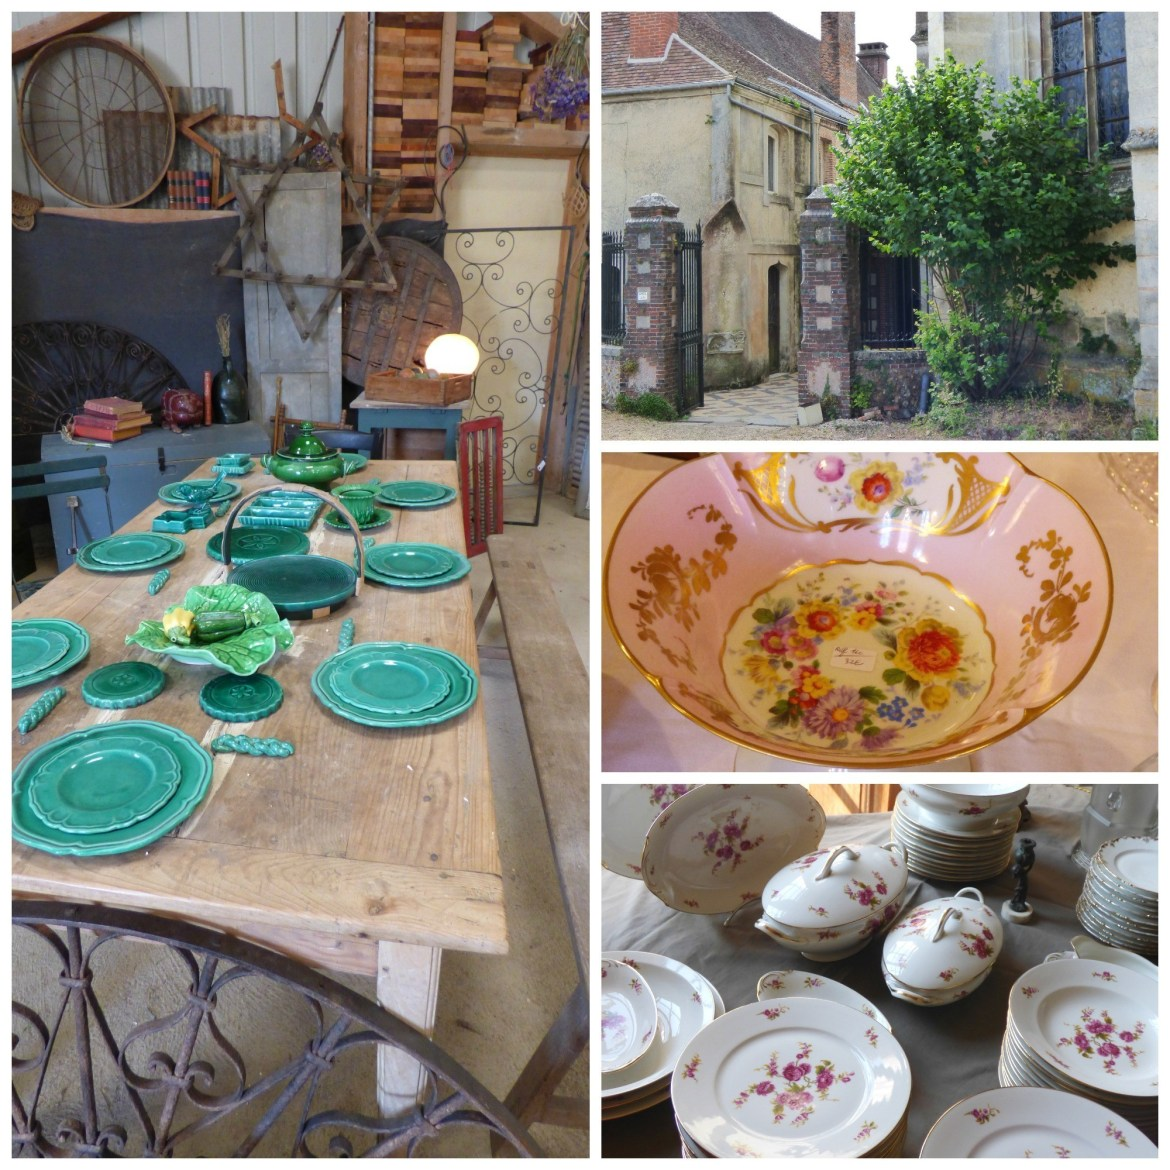 details from brocante buying tour